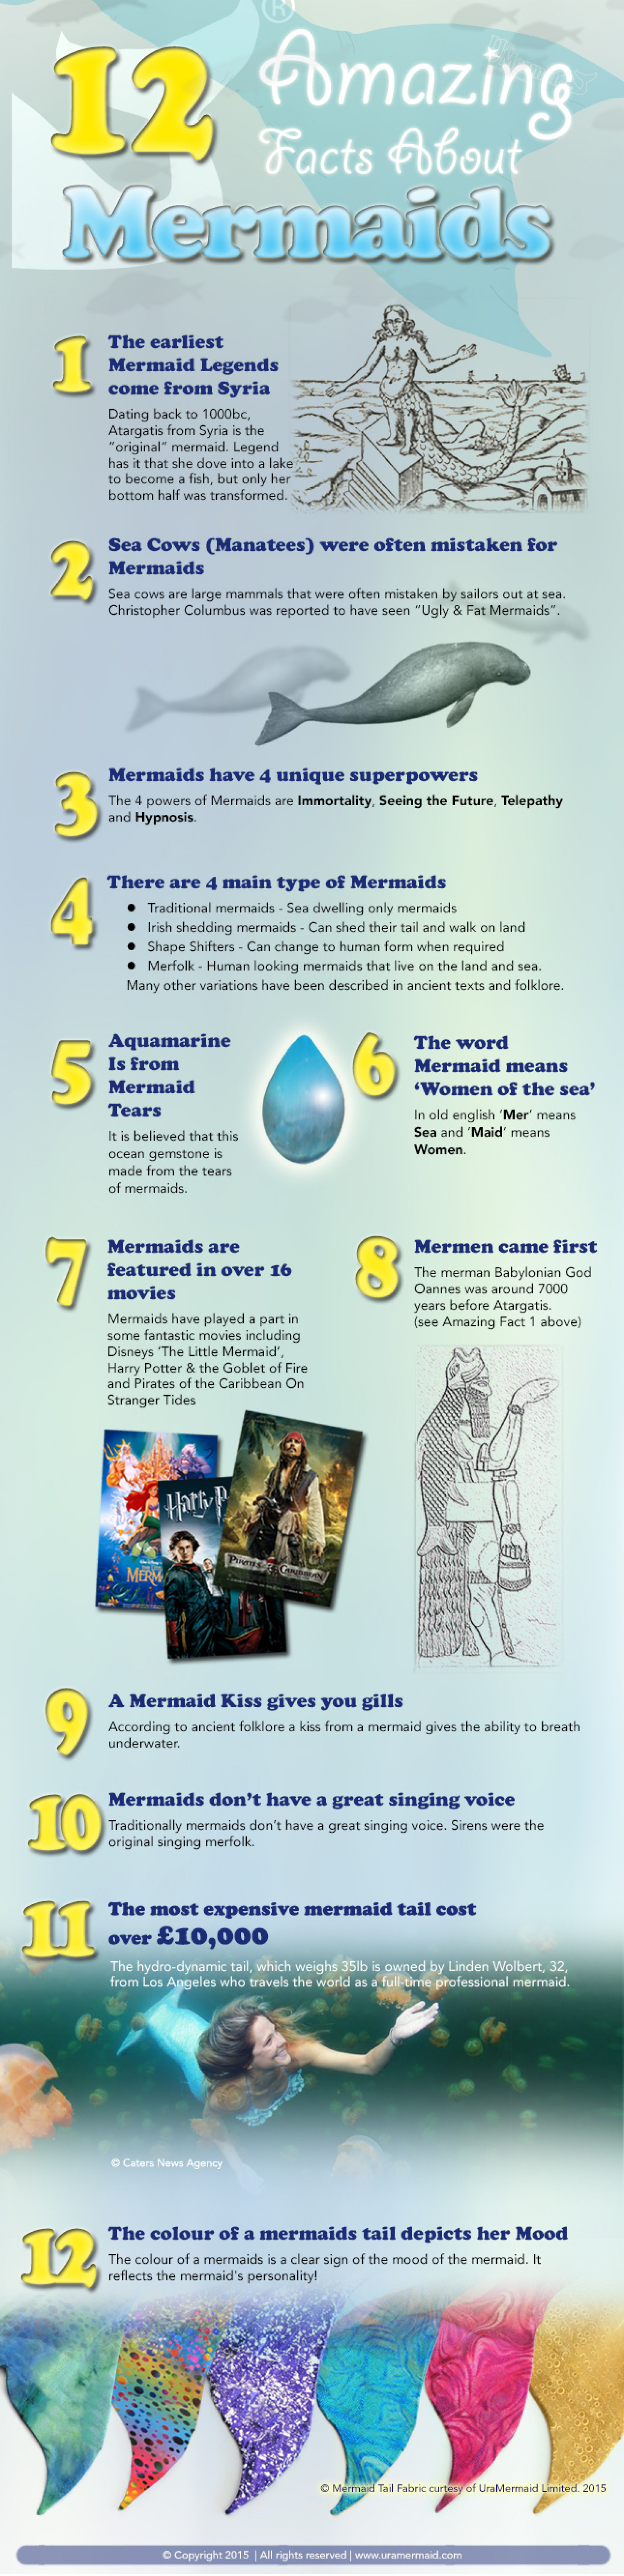 12 Amazing Facts About Mermaids Infographic